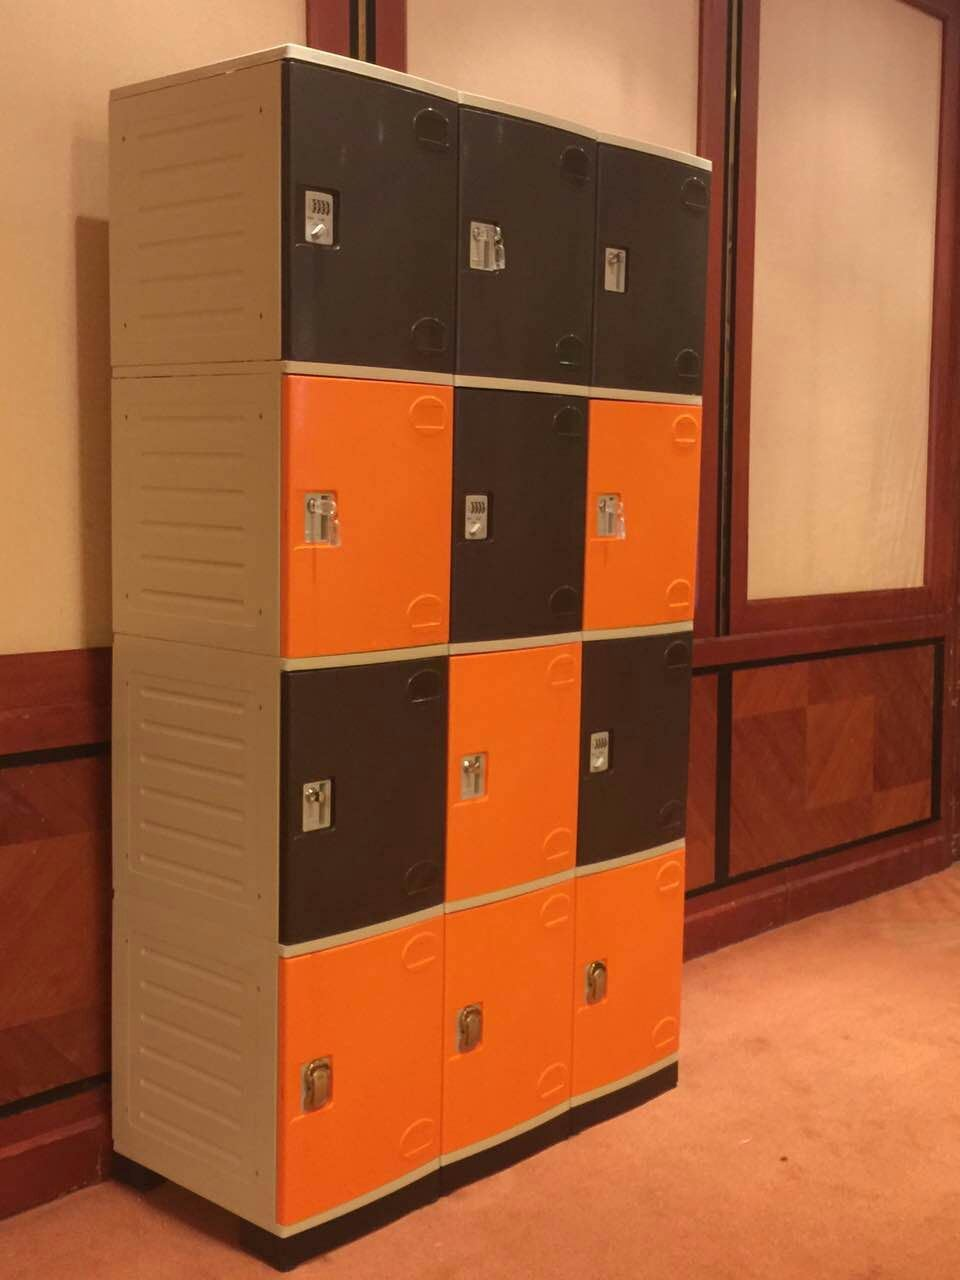 4 Door Locker for School or Library